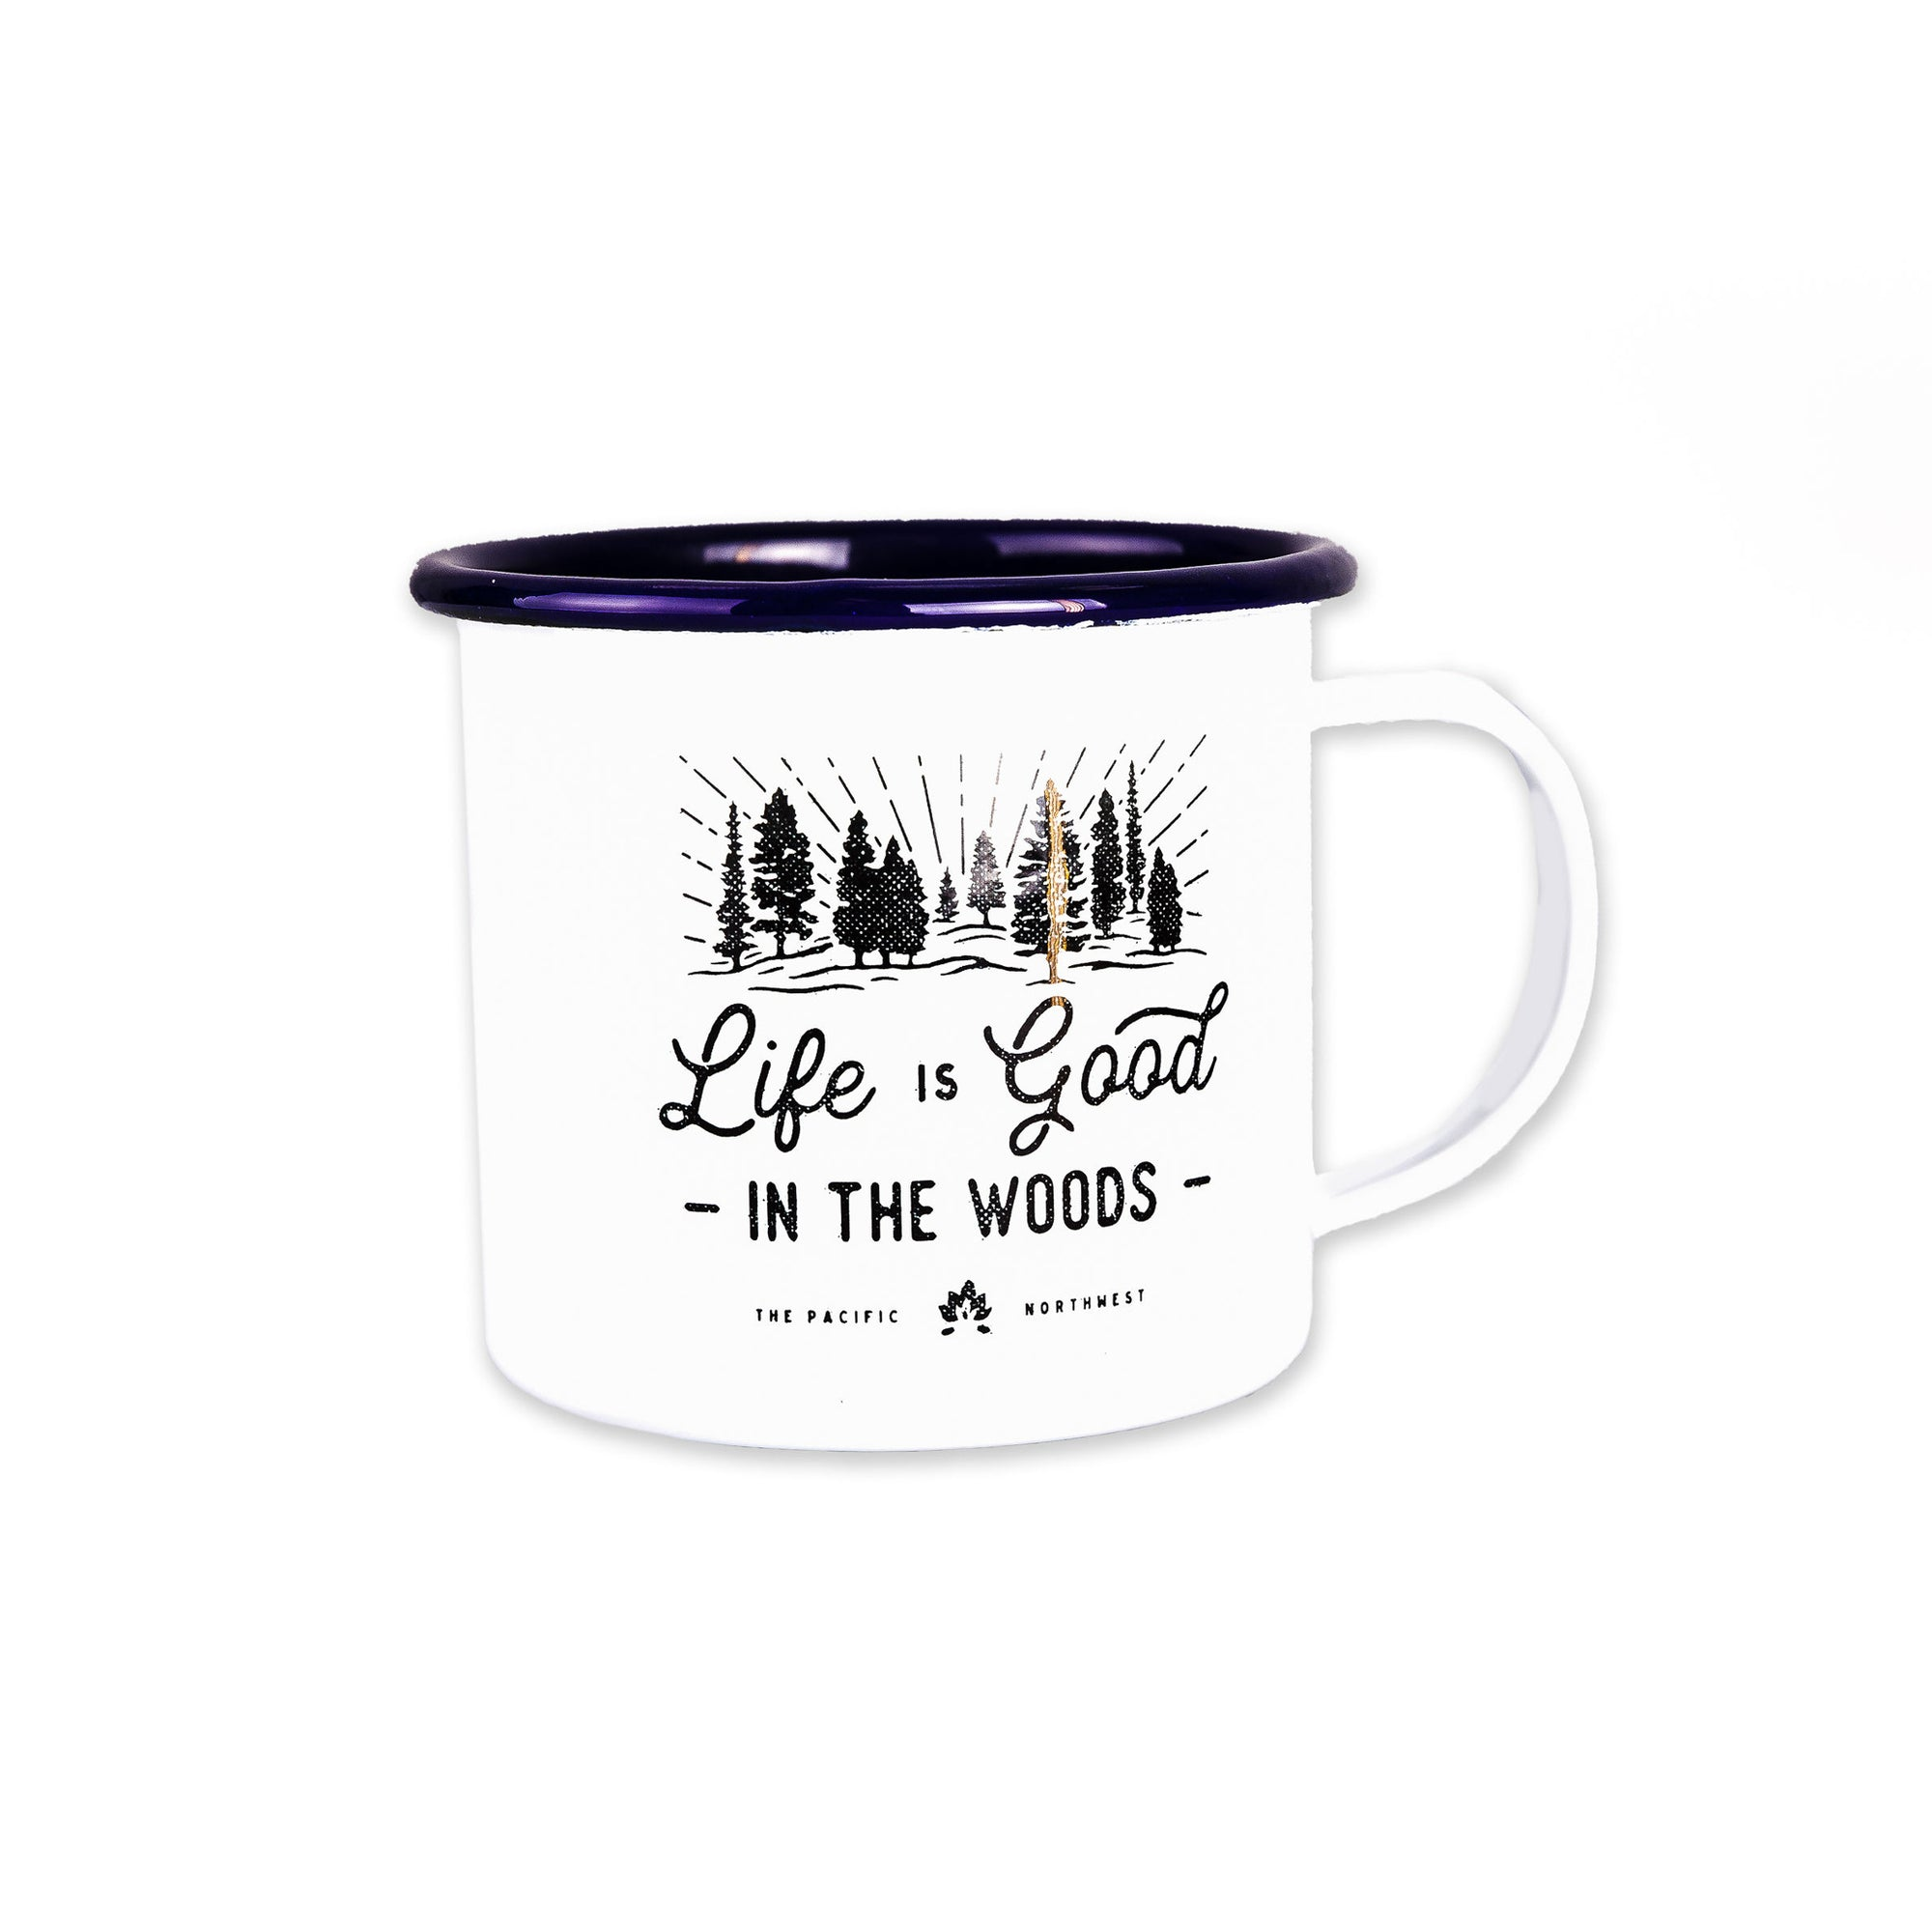 All Good in the Woods Enamel Mug, 16-Ounce